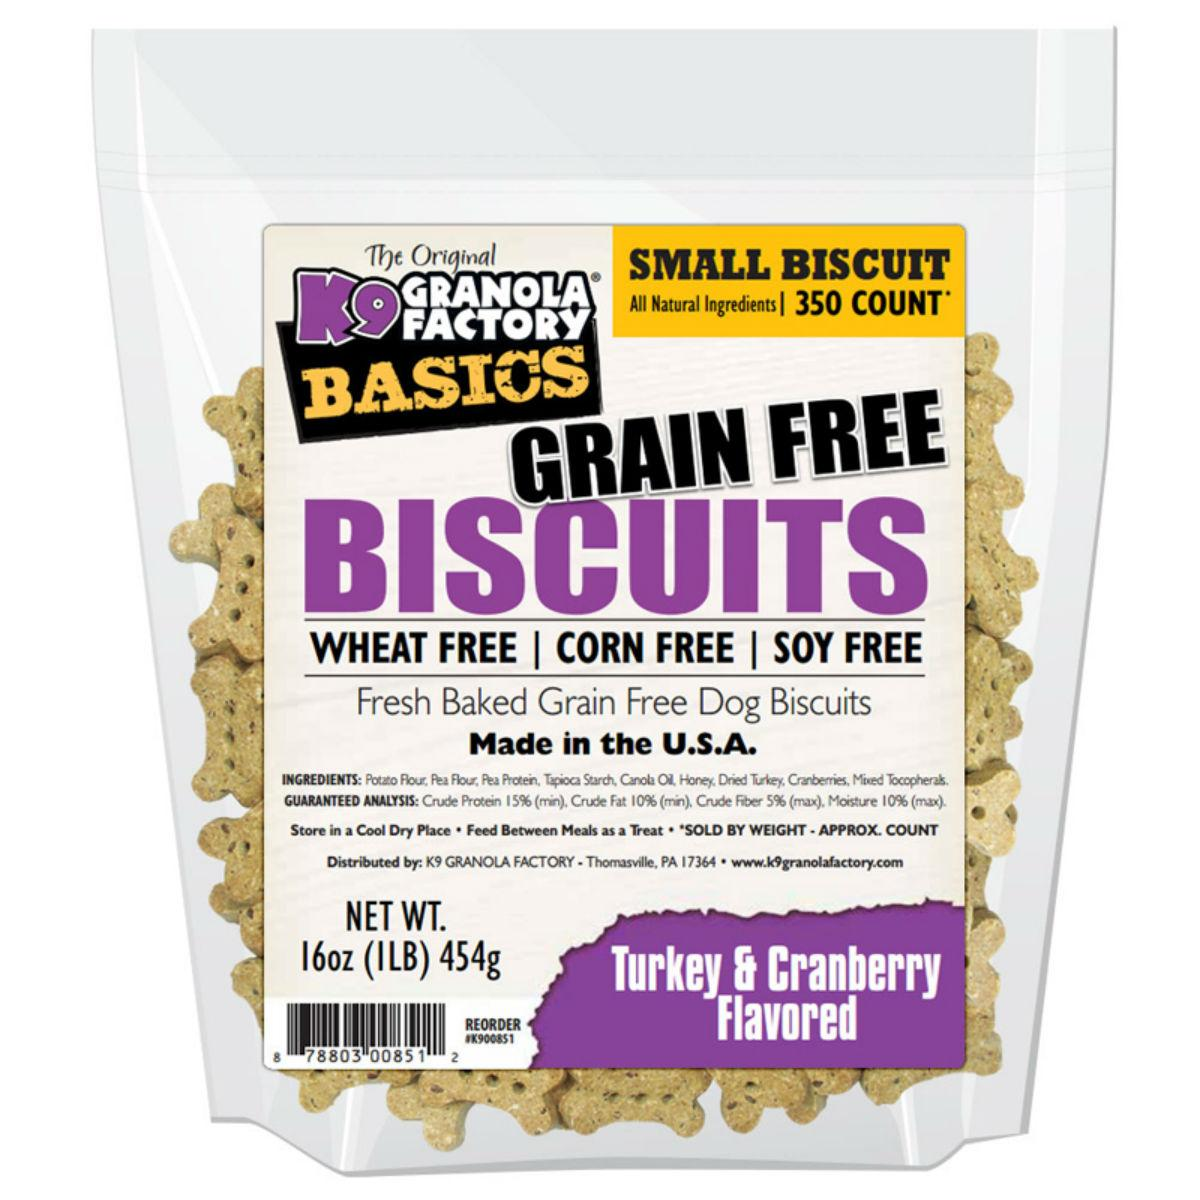 K9 Granola Factory Simply Biscuits Grain Free Dog Treats - Turkey & Cranberry